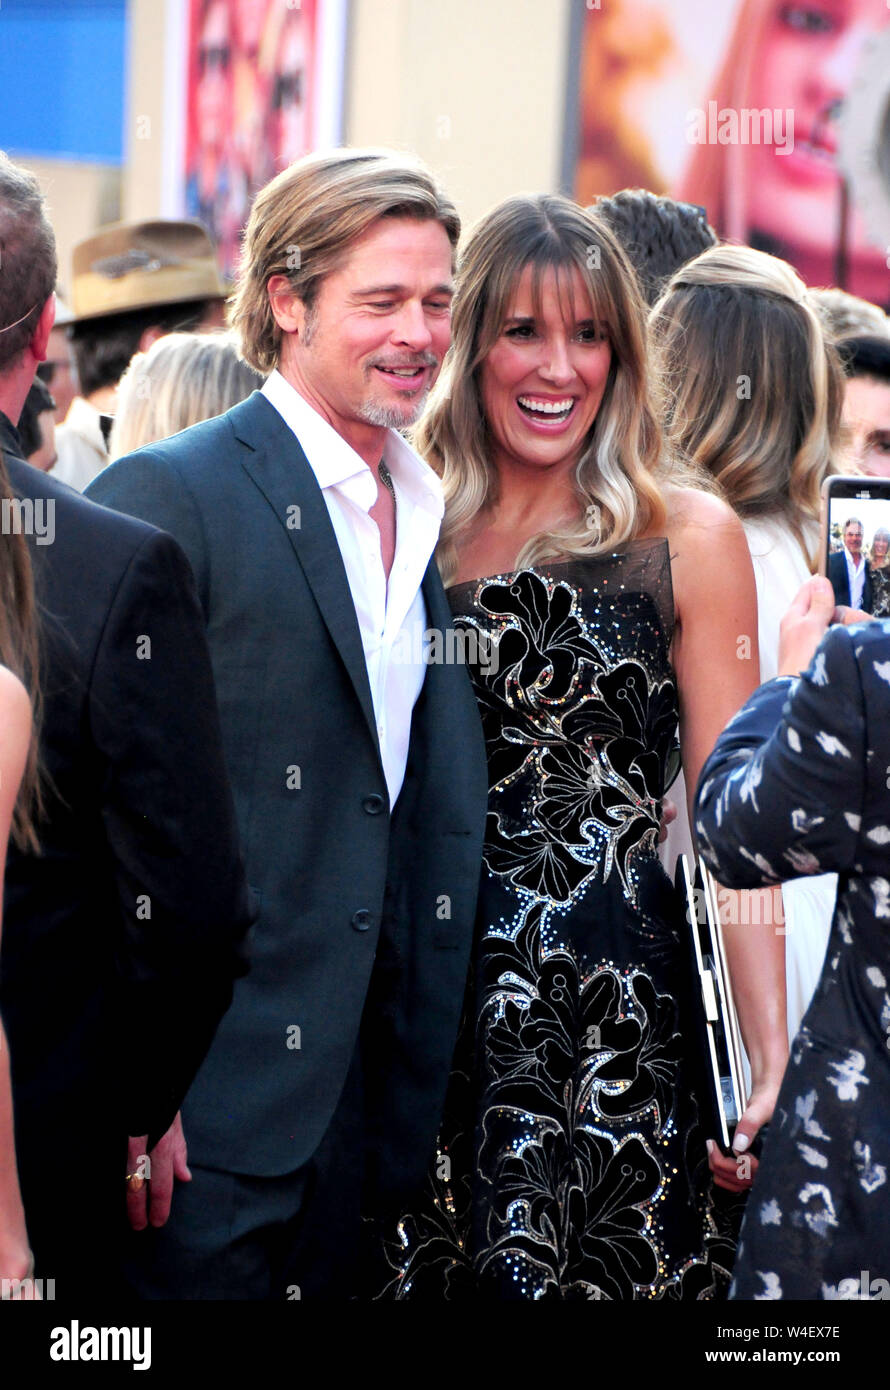 Hollywood, California, USA 22nd July 2019 Actor Brad Pitt attends Sony Pictures Presents the World Premiere of 'Once Upon A Time...In Hollywood' on July 22, 2019 at TCL Chinese Theatre in Hollywood, California, USA. Photo by Barry King/Alamy Live News Stock Photo